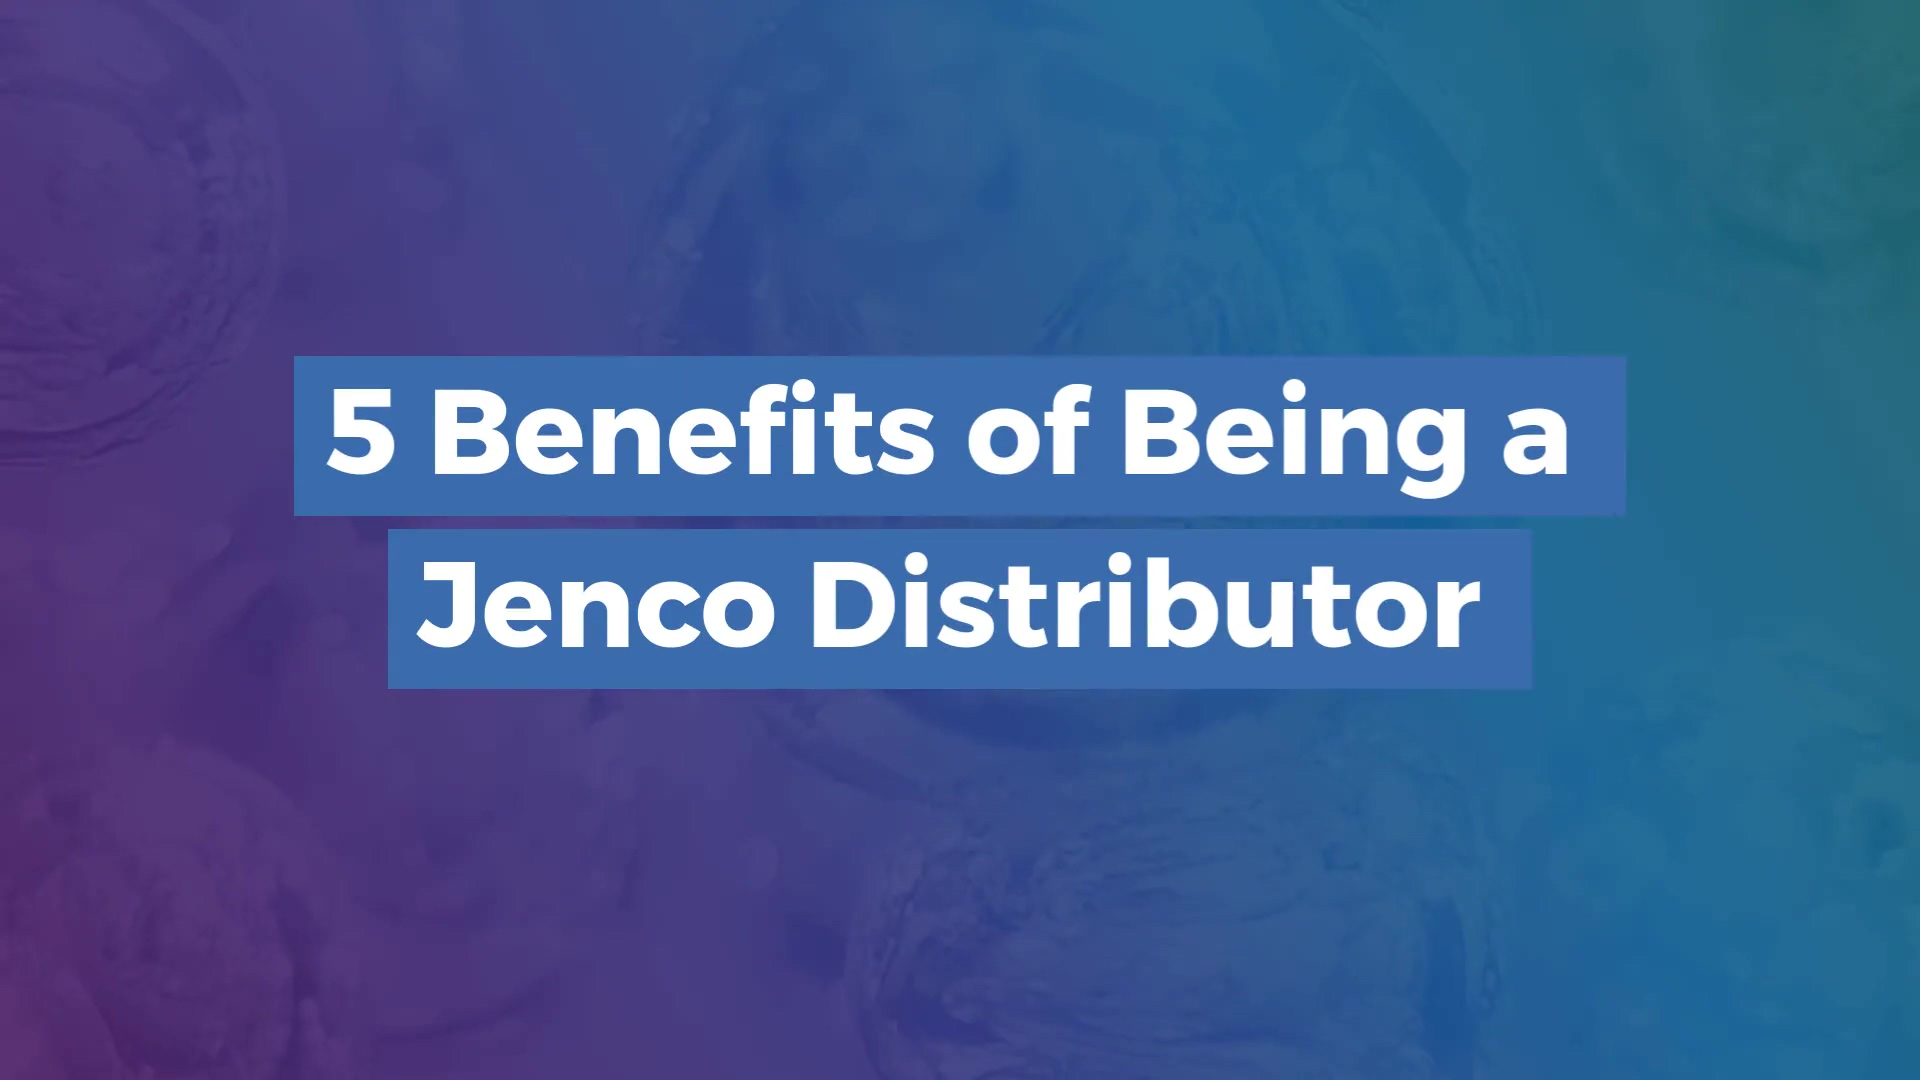 5_Benefits_of_Being_a_Jenco_Distributor